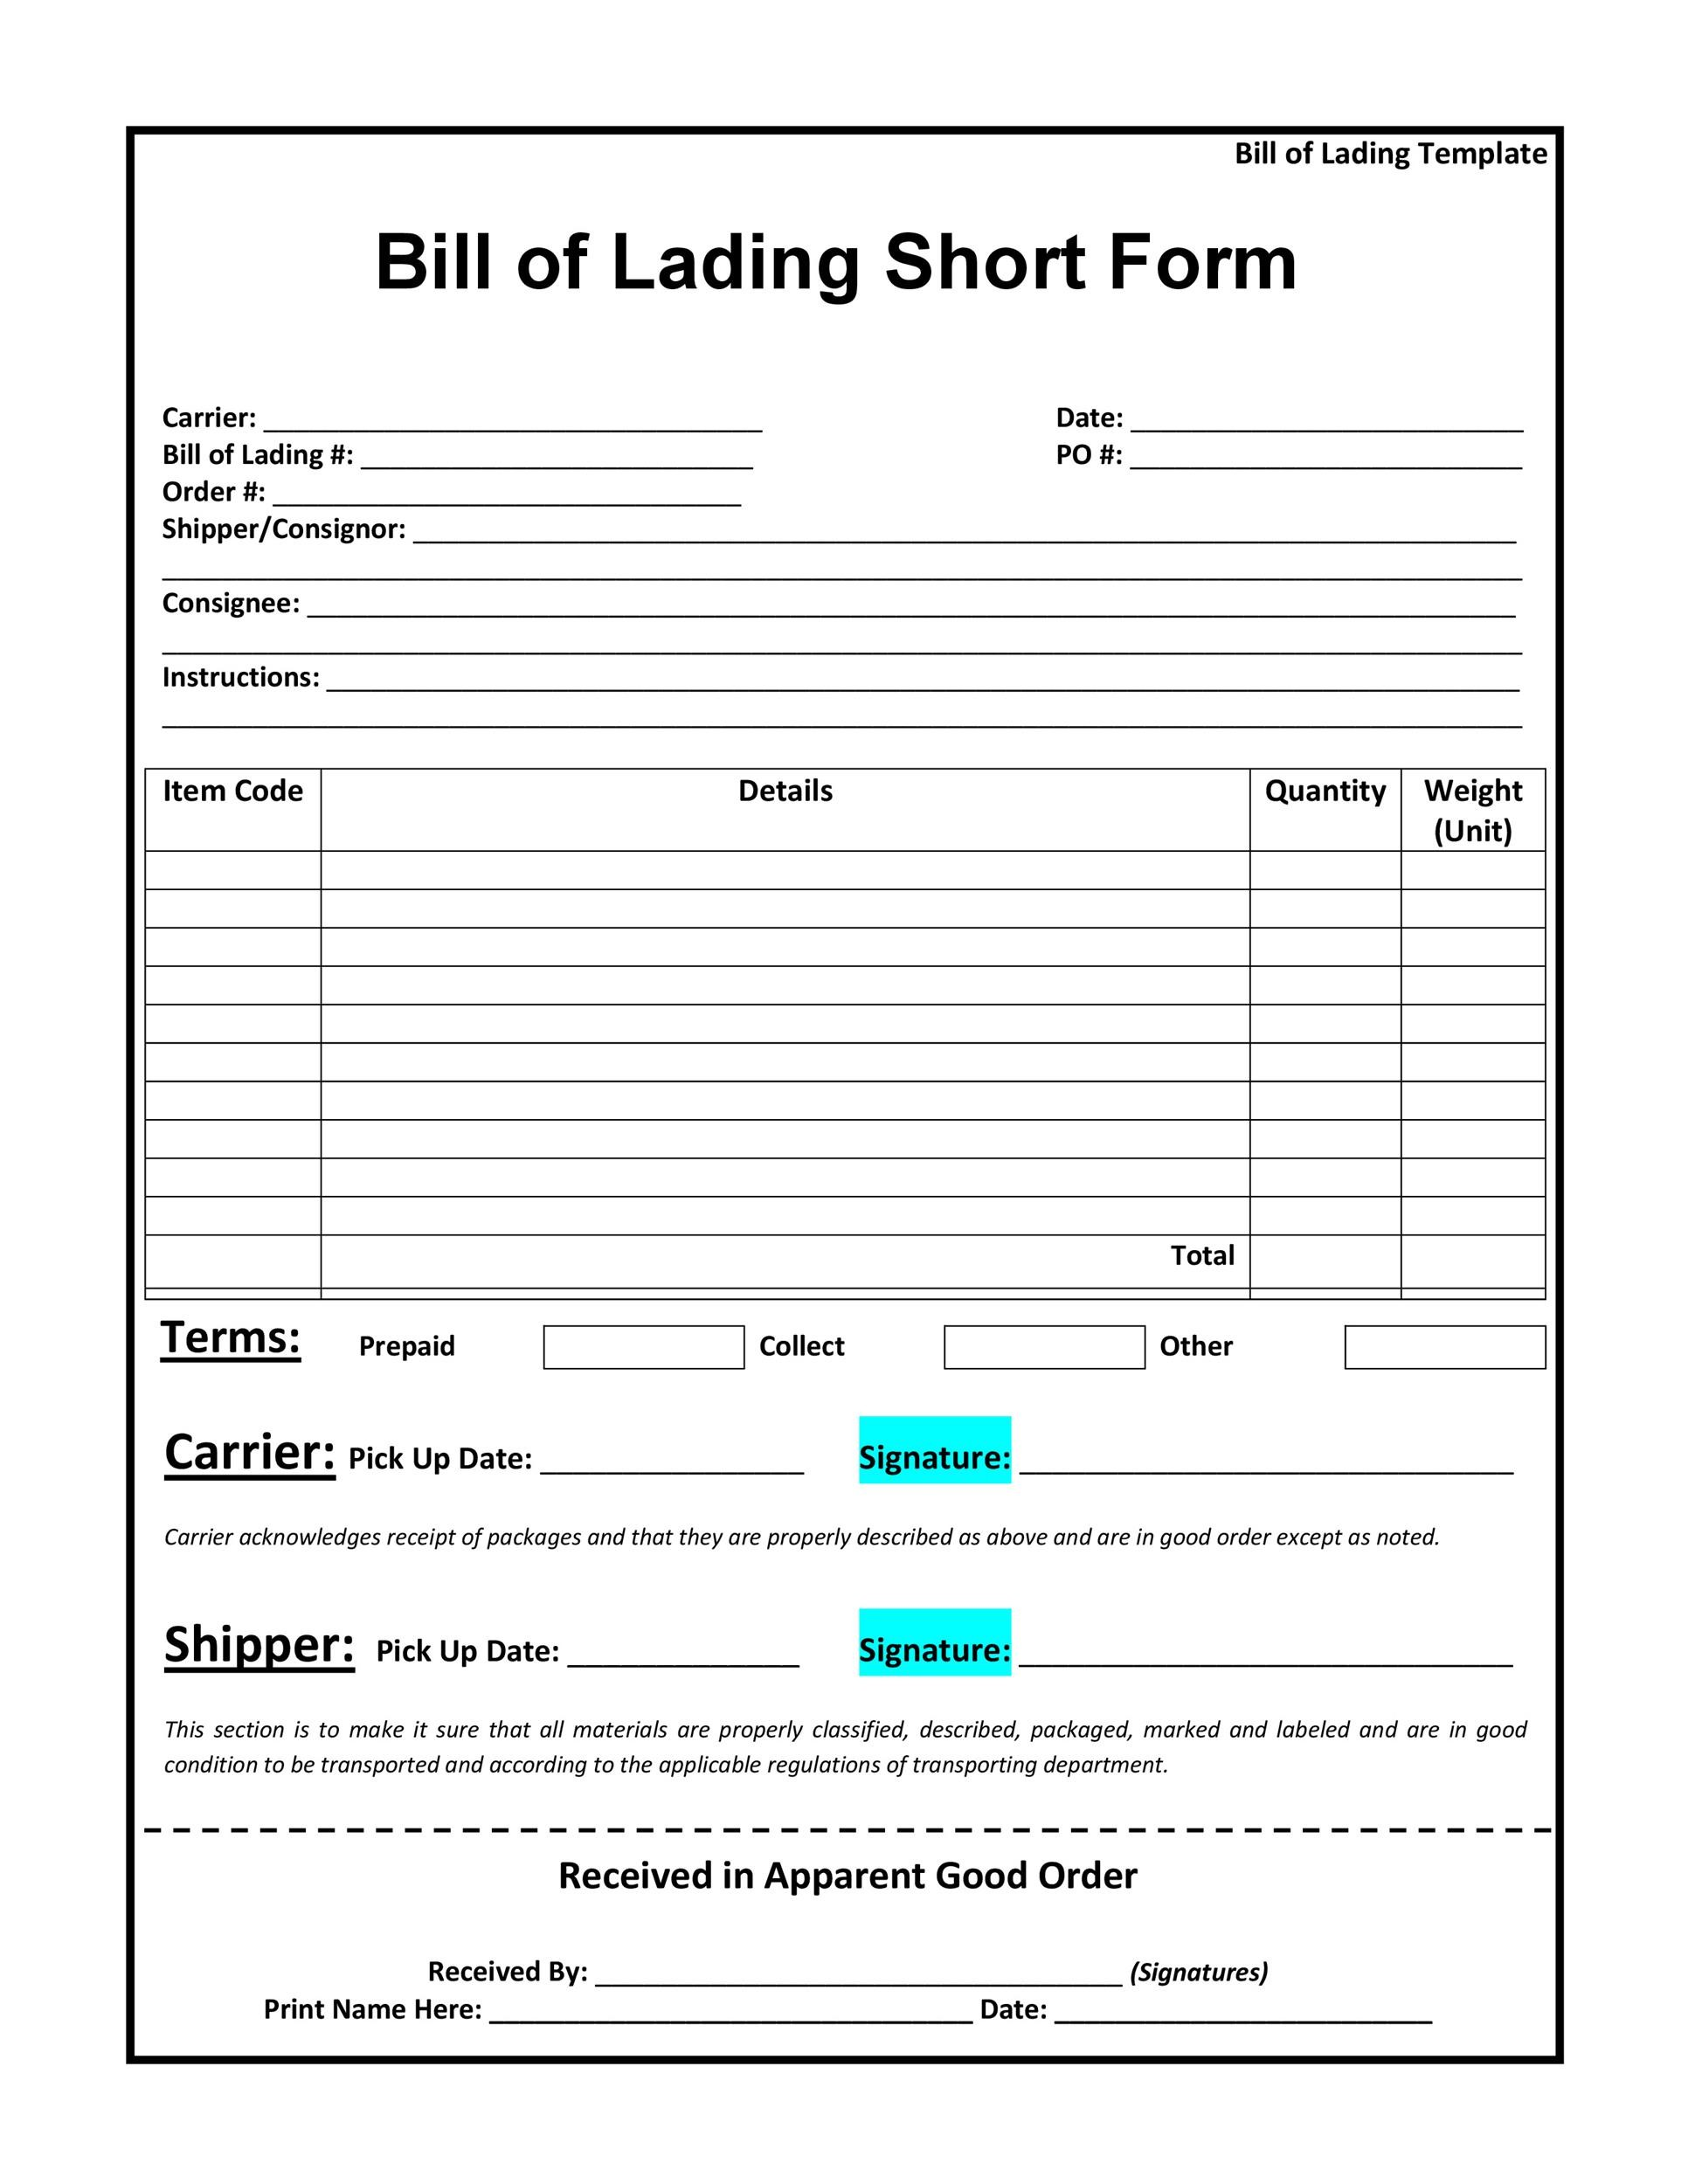 Free Bill of lading 30